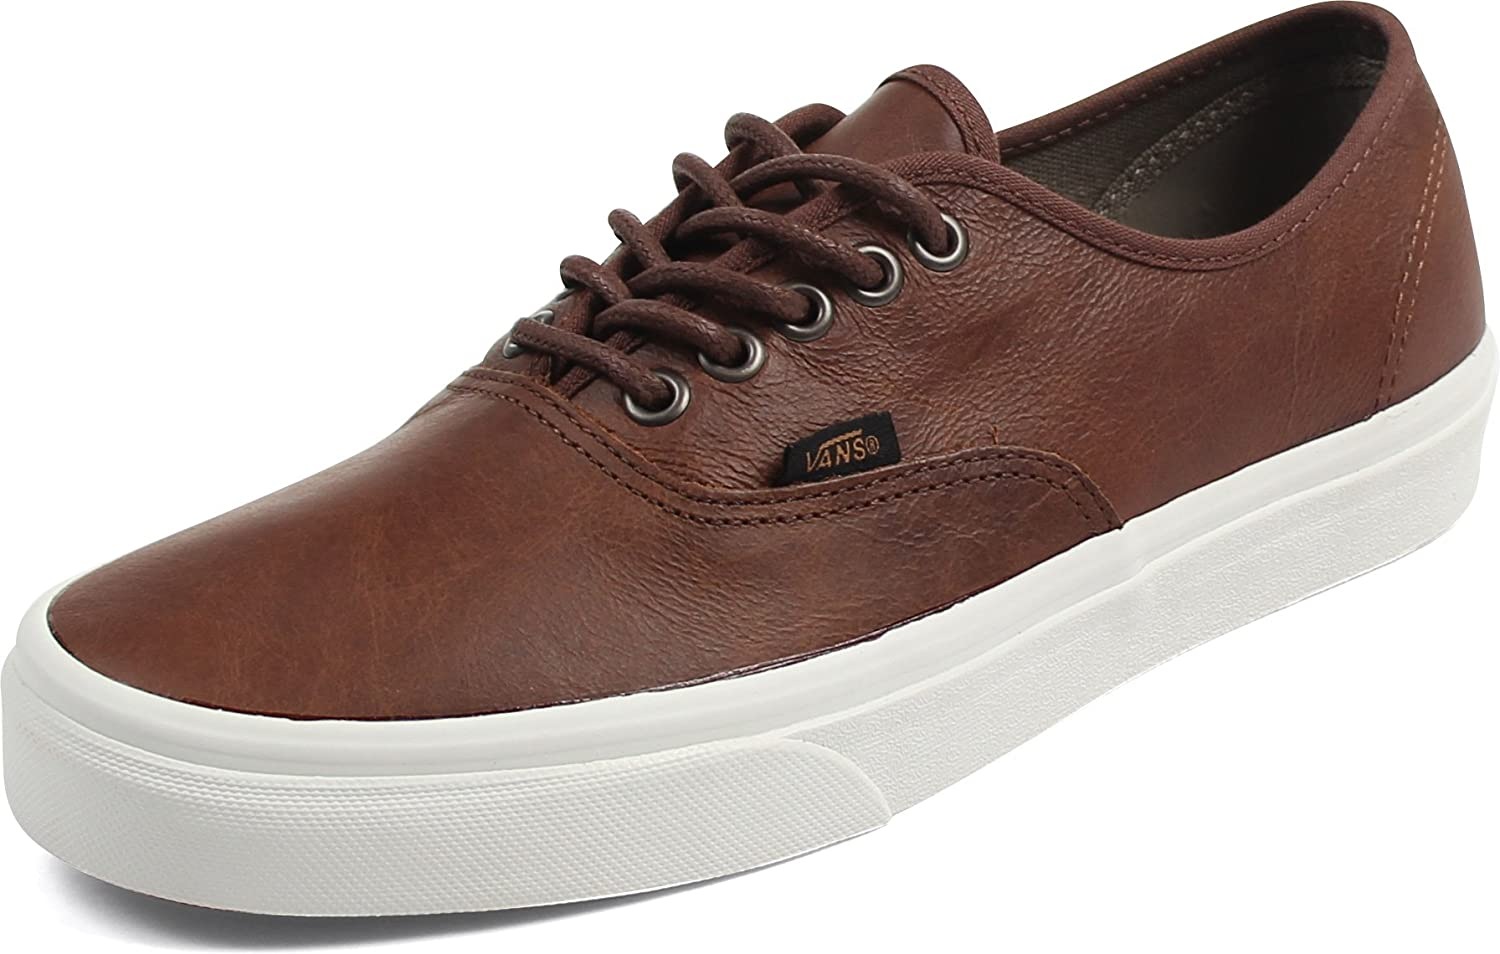 Vans Unisex-Erwachsene Authentic Low-Top  4|(leather) dachs